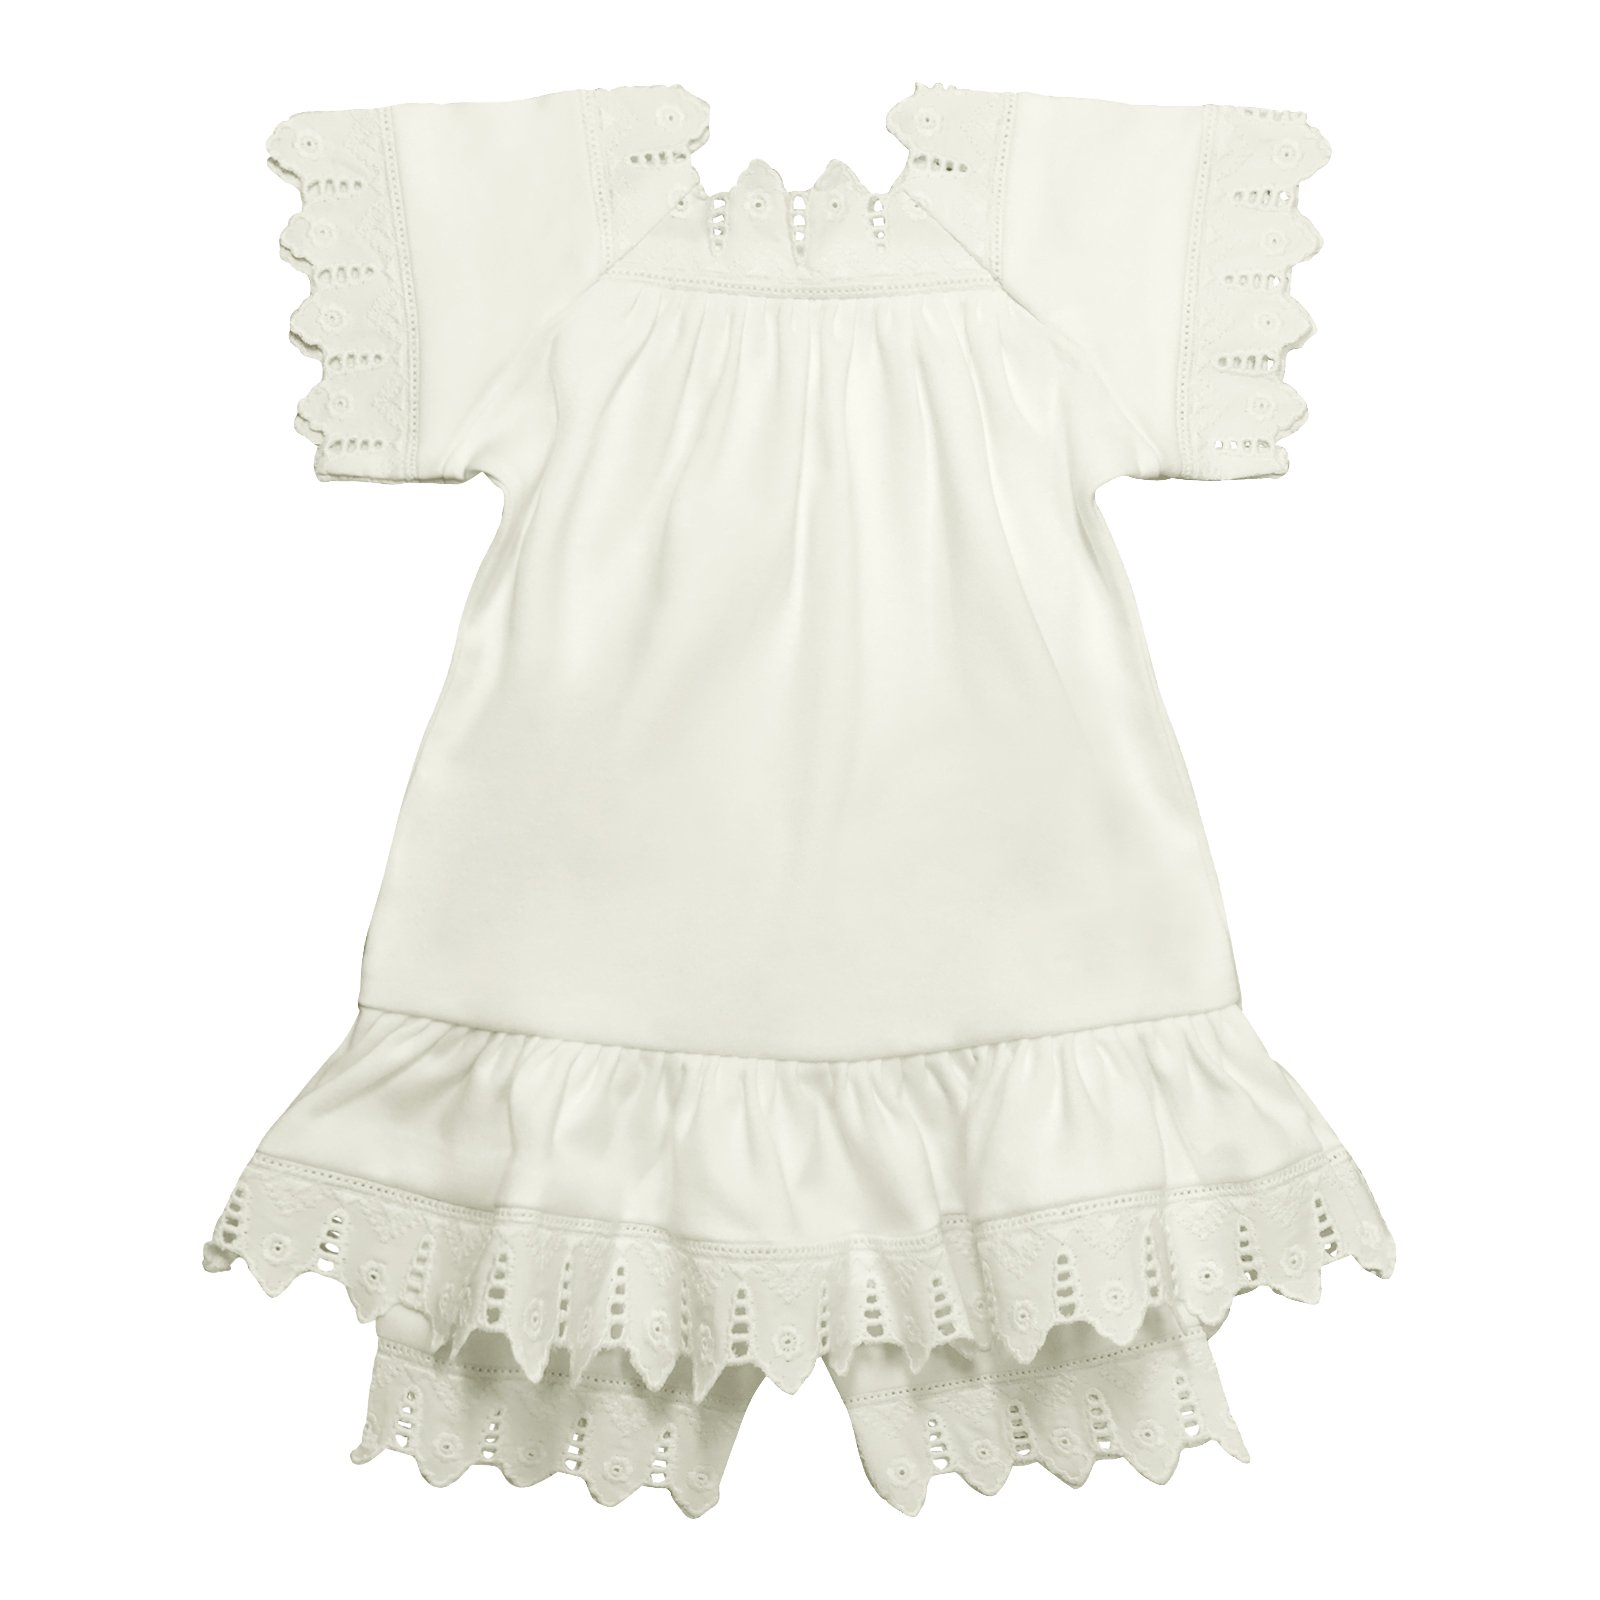 Victorian Organics Baby Girl Sailor Set 4 Piece Organic Cotton Knit and Eyelet Lace Trim Jacket Hat Dress and Bloomers (NB 0-3 months) by Victorian Organics (Image #3)